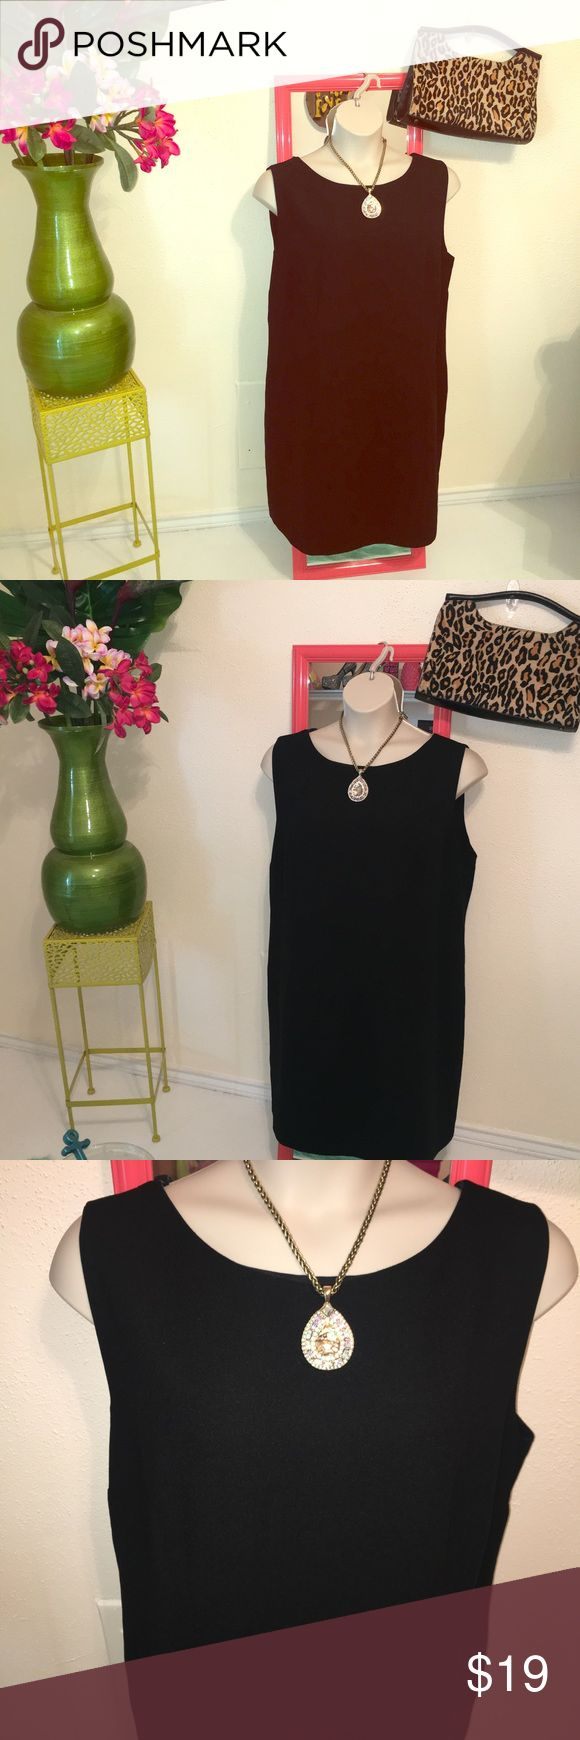 Karen Scott EUC black sheath dress 22W LBD A great black sleeveless sheath dress,  this would work well under a blazer or alone...in excellent condition size 22 from Macy's. Simple and easy, gr at with some statement jewelry and shoes to make it pop! Karen Scott Dresses Midi